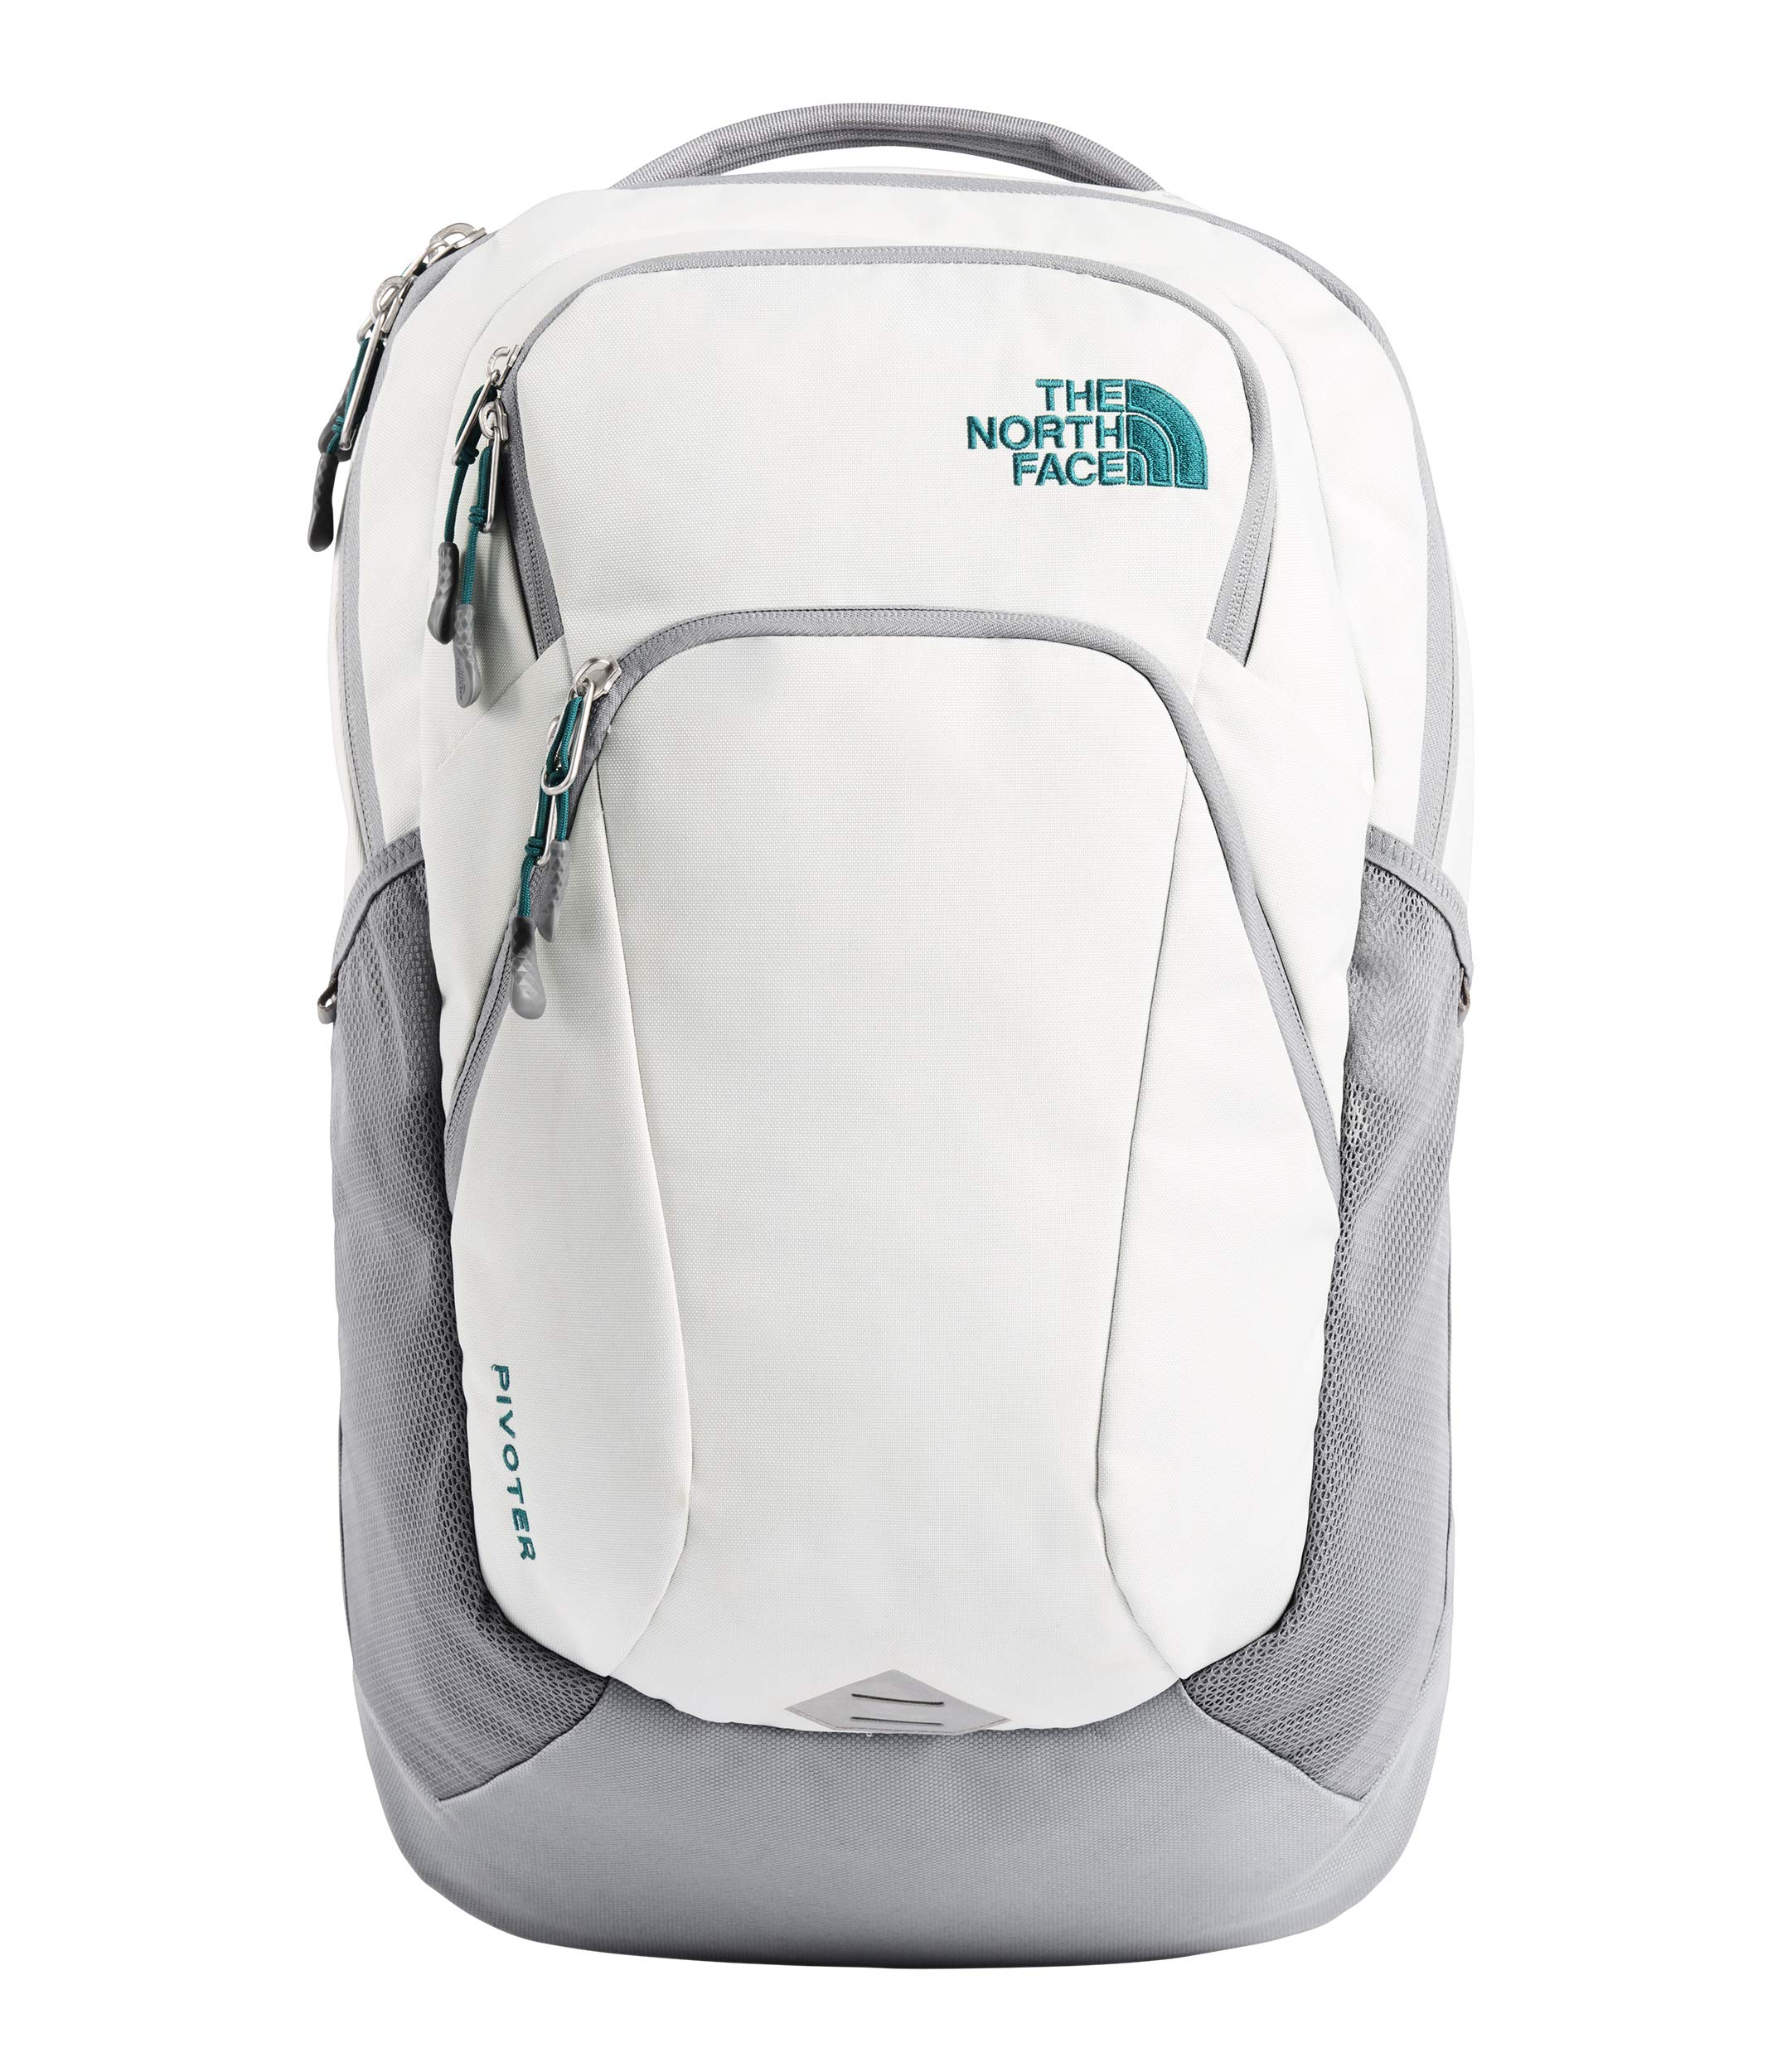 The North Face Women's Pivoter Backpack, Mid Grey/Tin Grey by The North Face